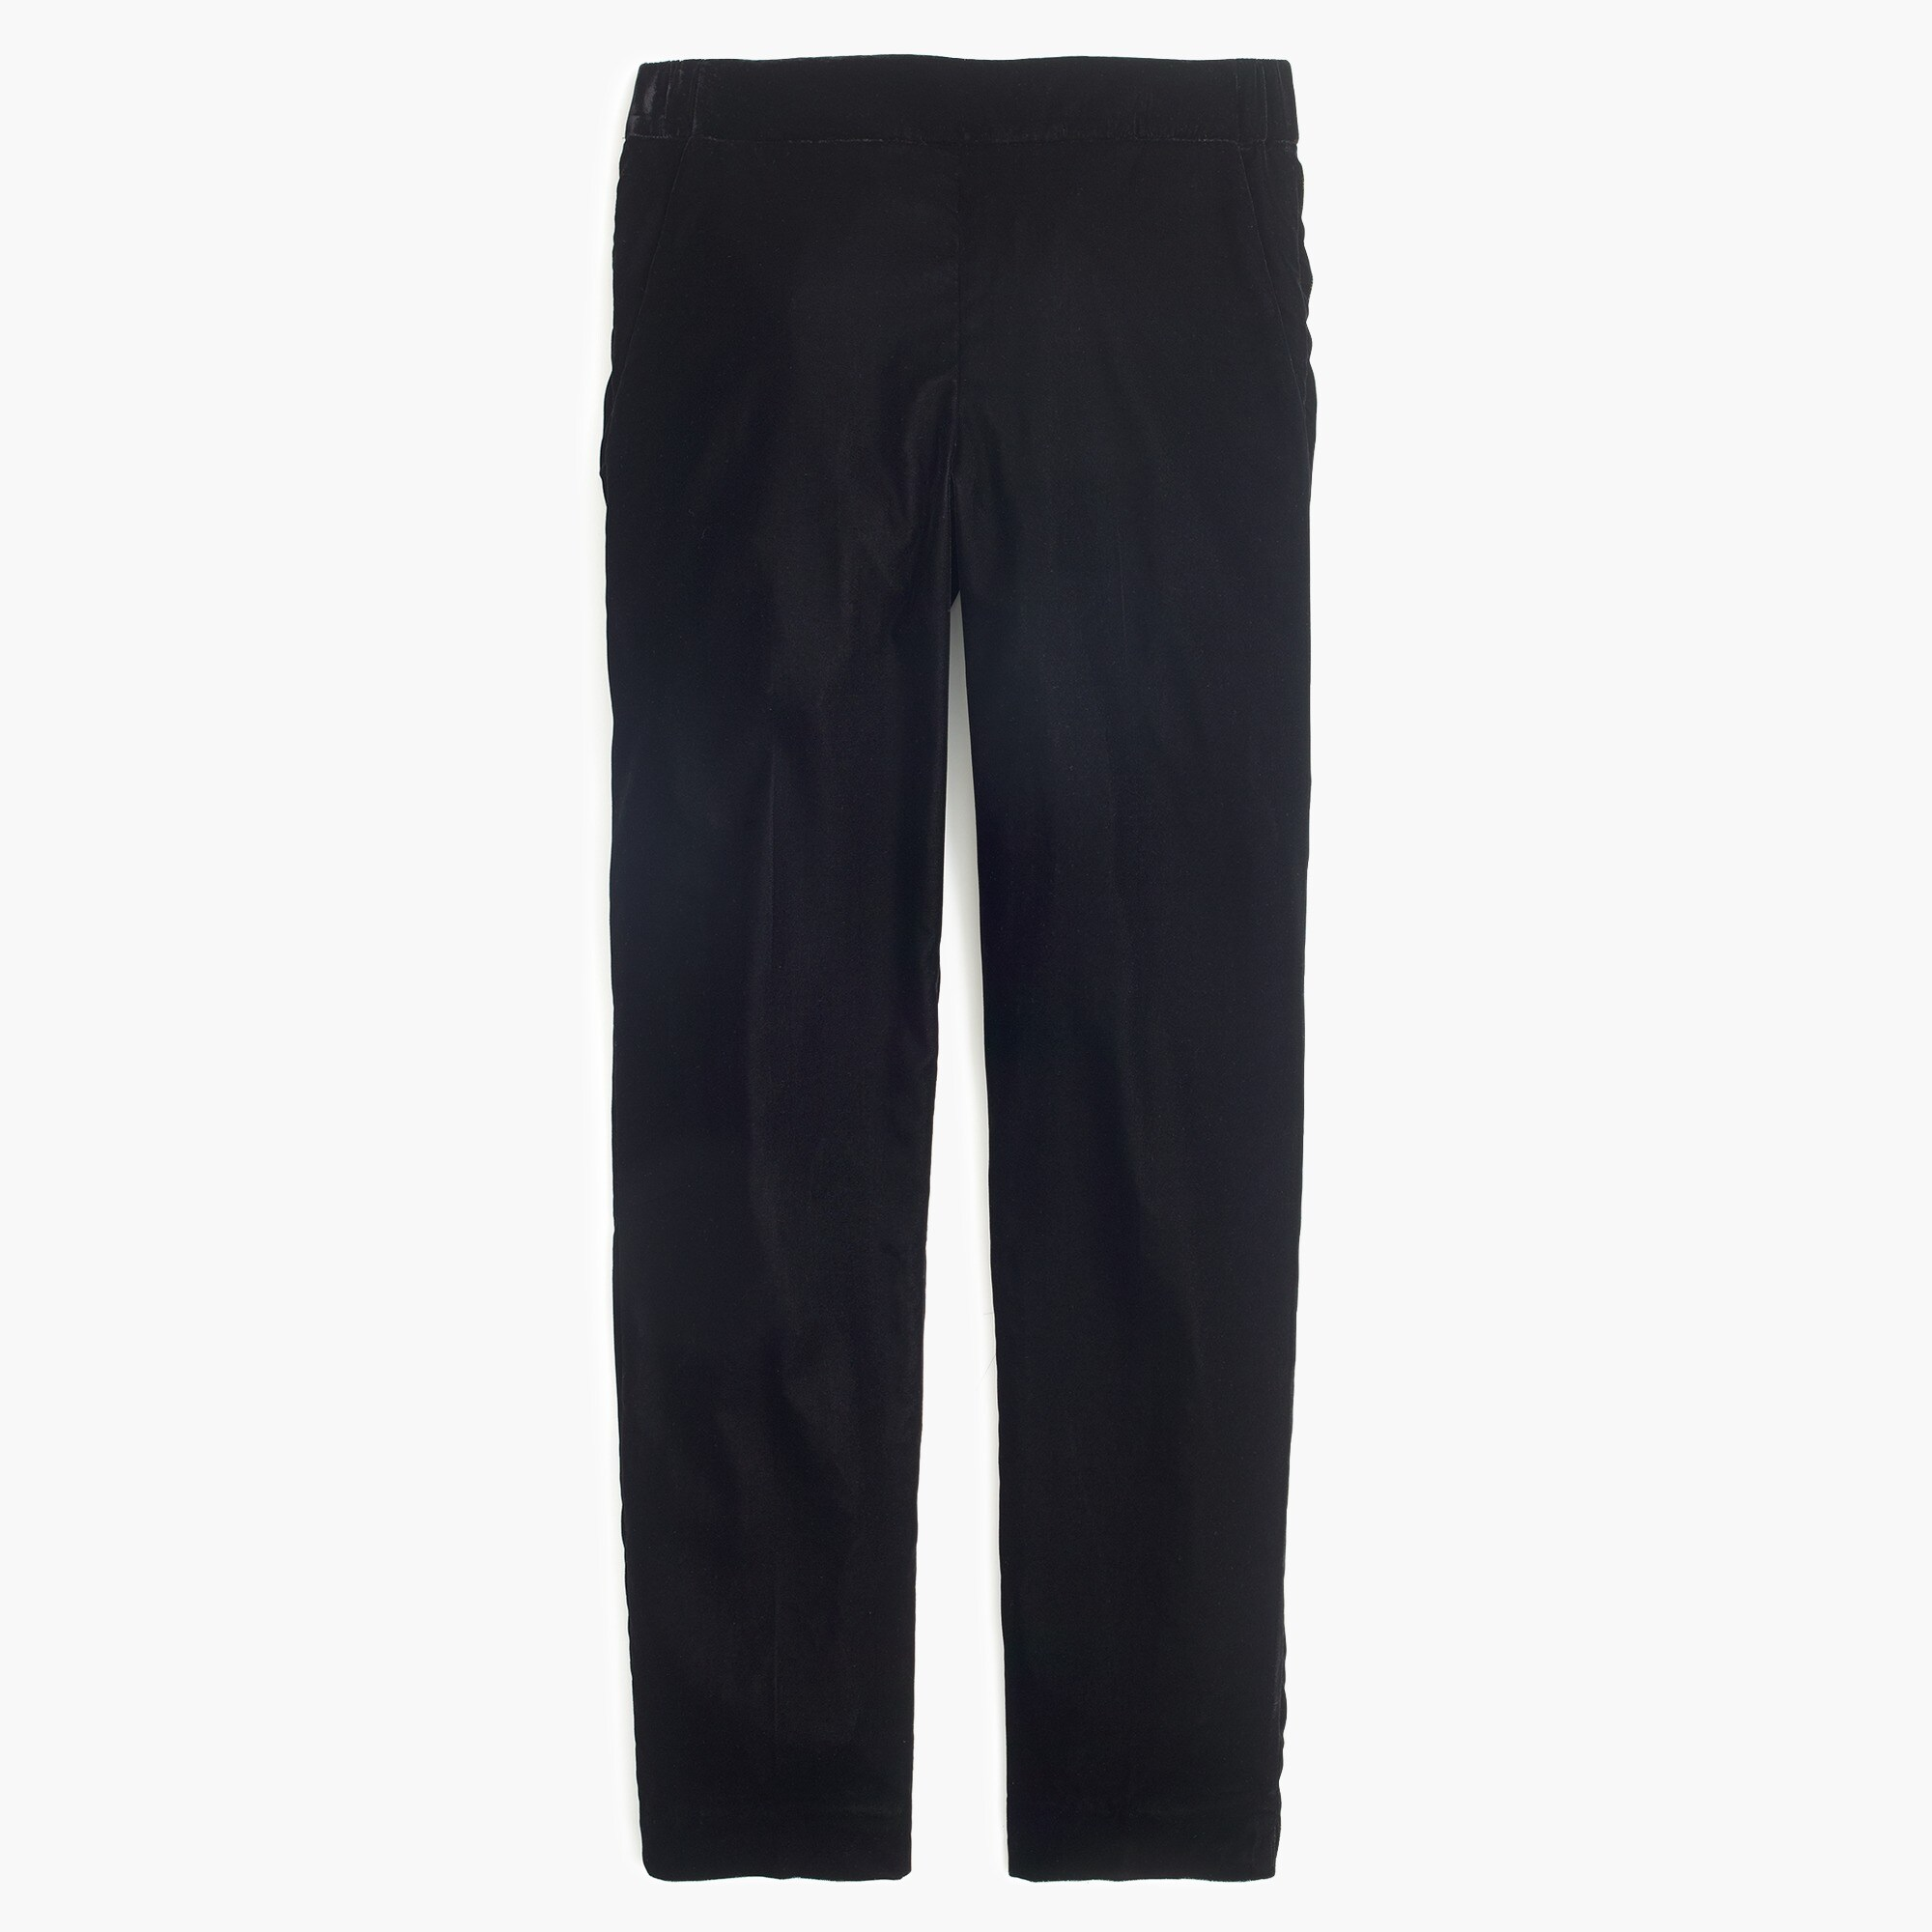 petite easy pant in velvet : women pants